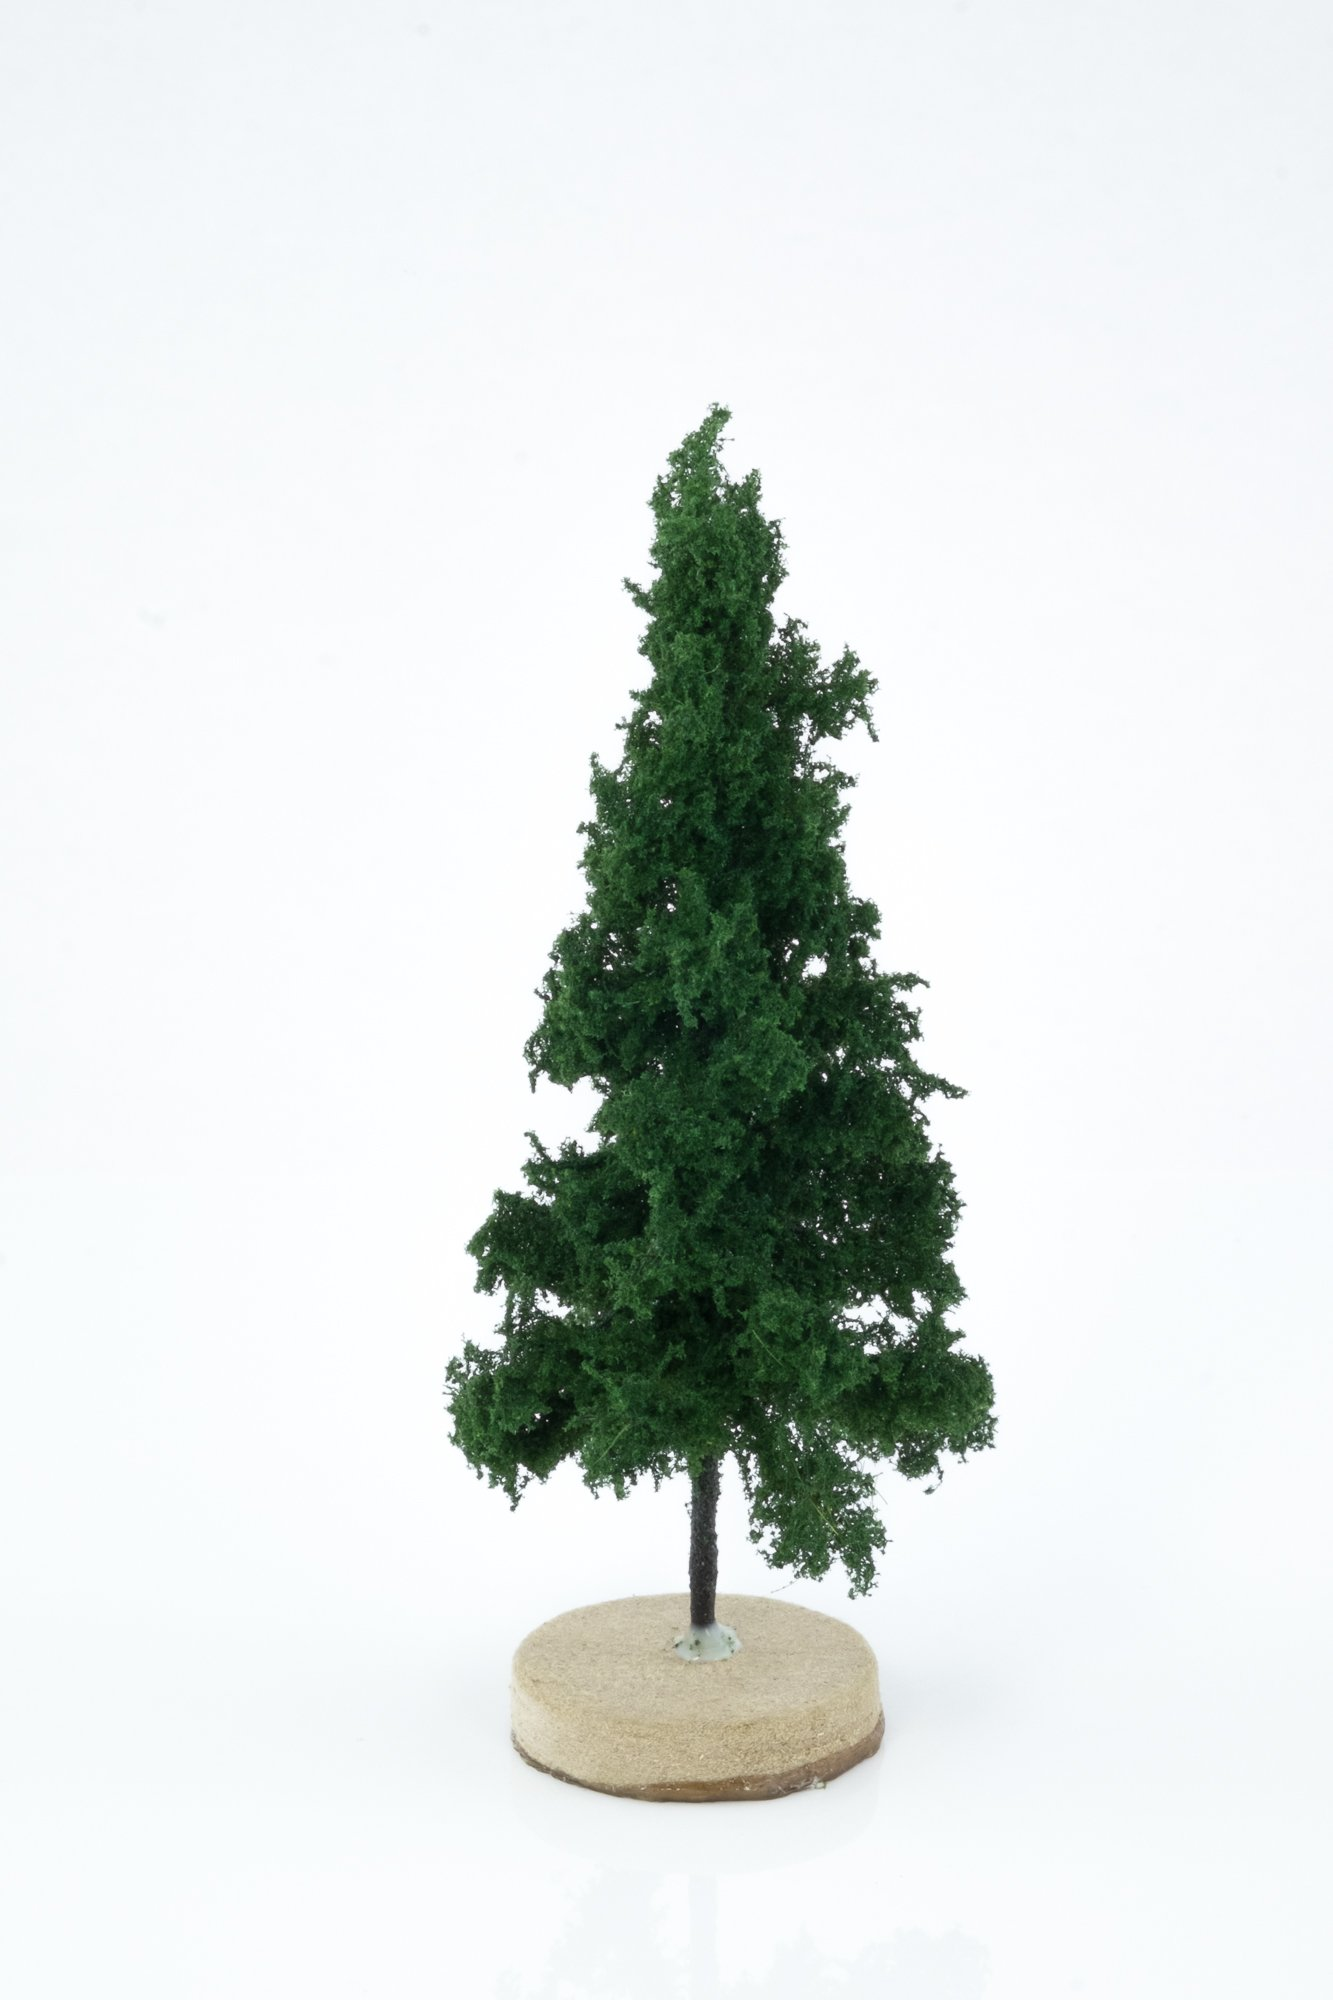 Hand-made, green, spruce tree model. Size between 8 and 12 cm. Made from high quality model supplies by Primo Models.